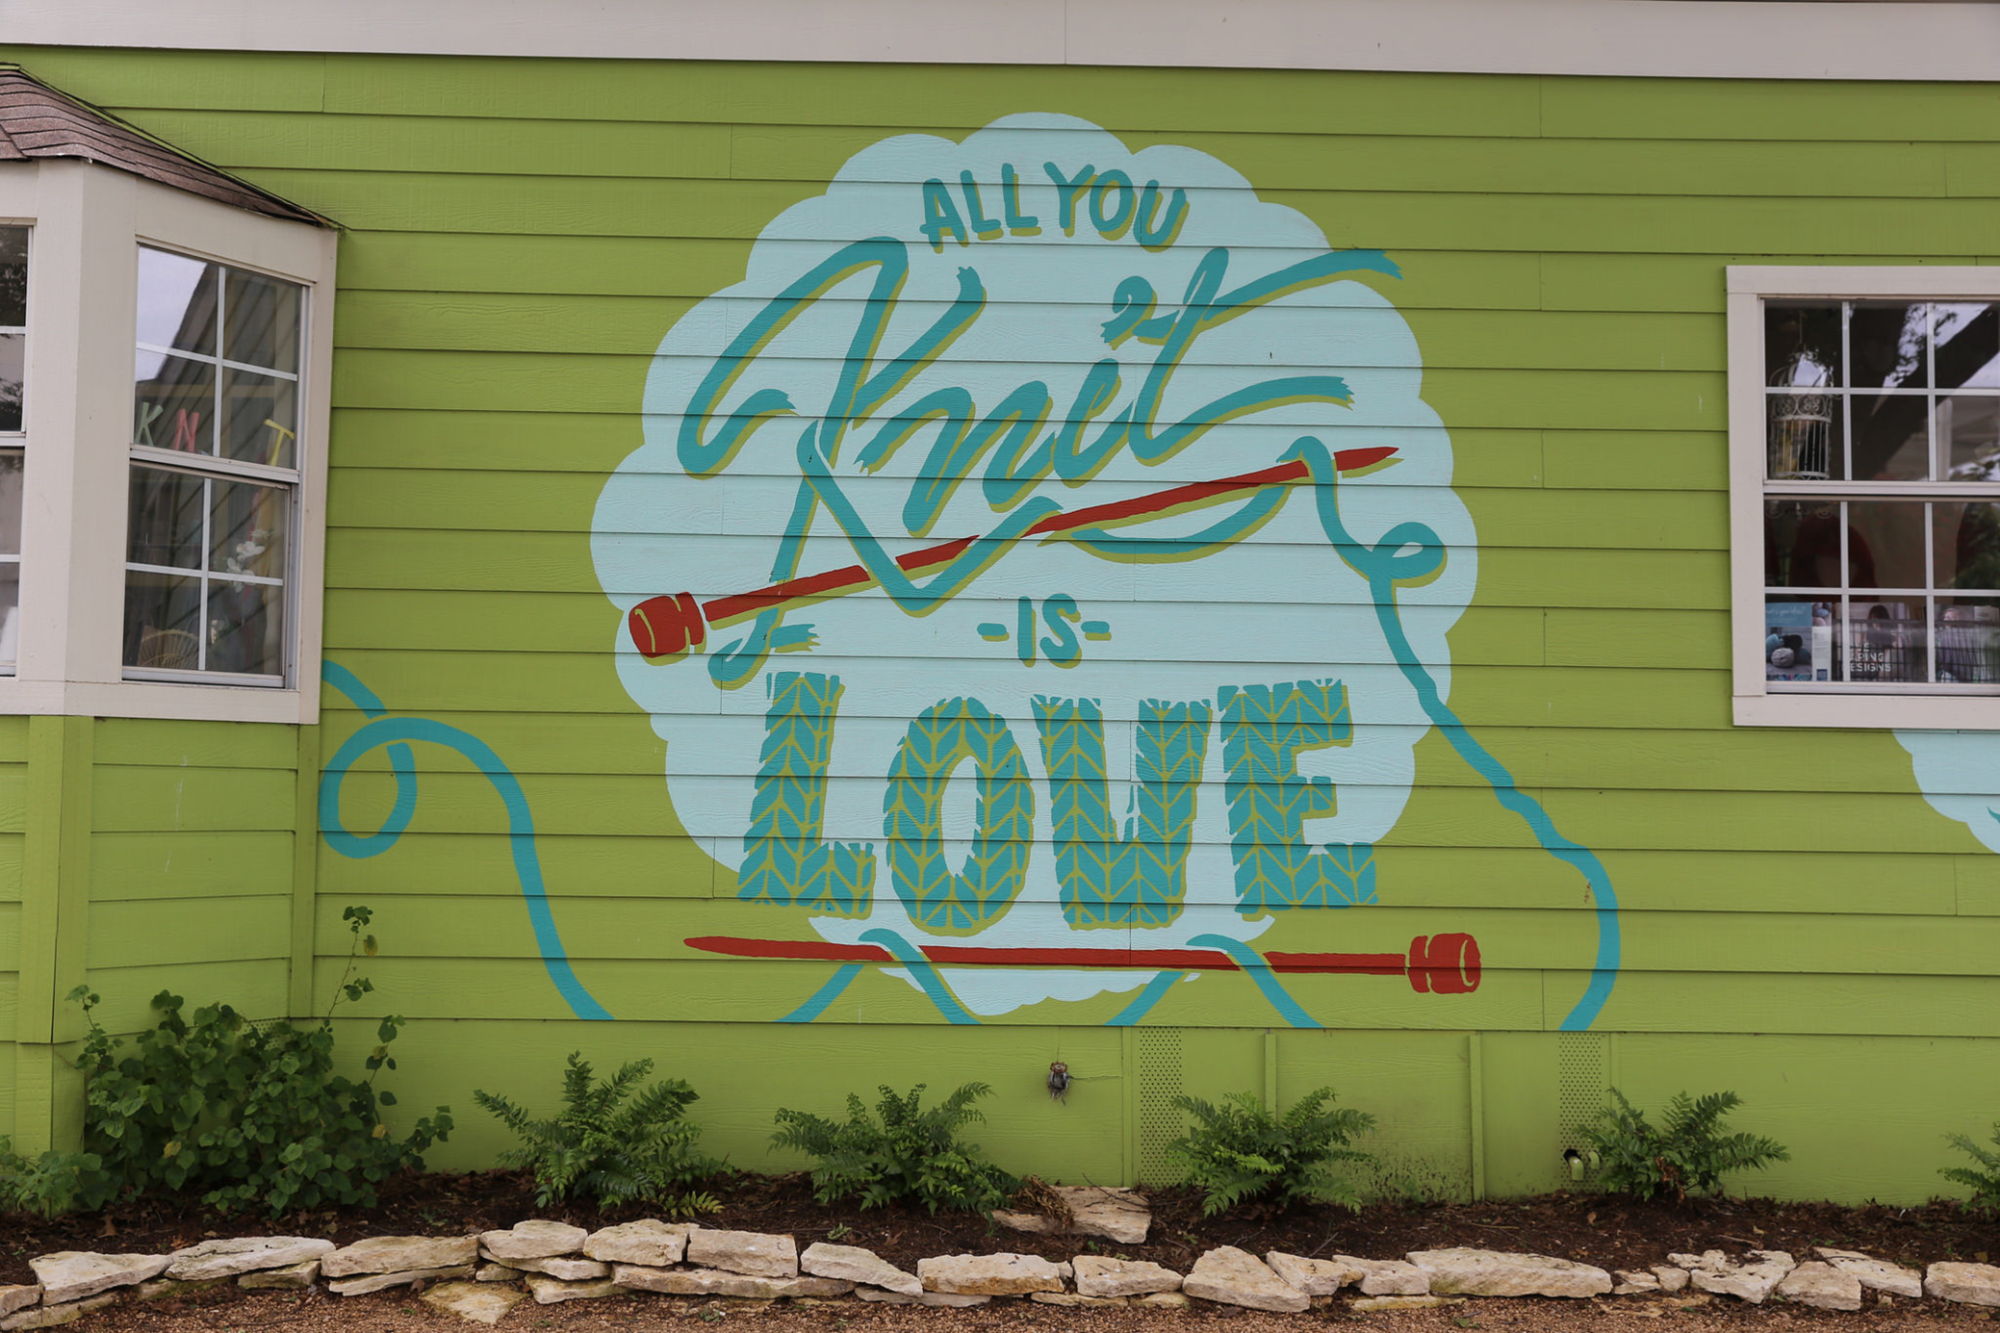 """All you knit is love"" sign on wall of building"